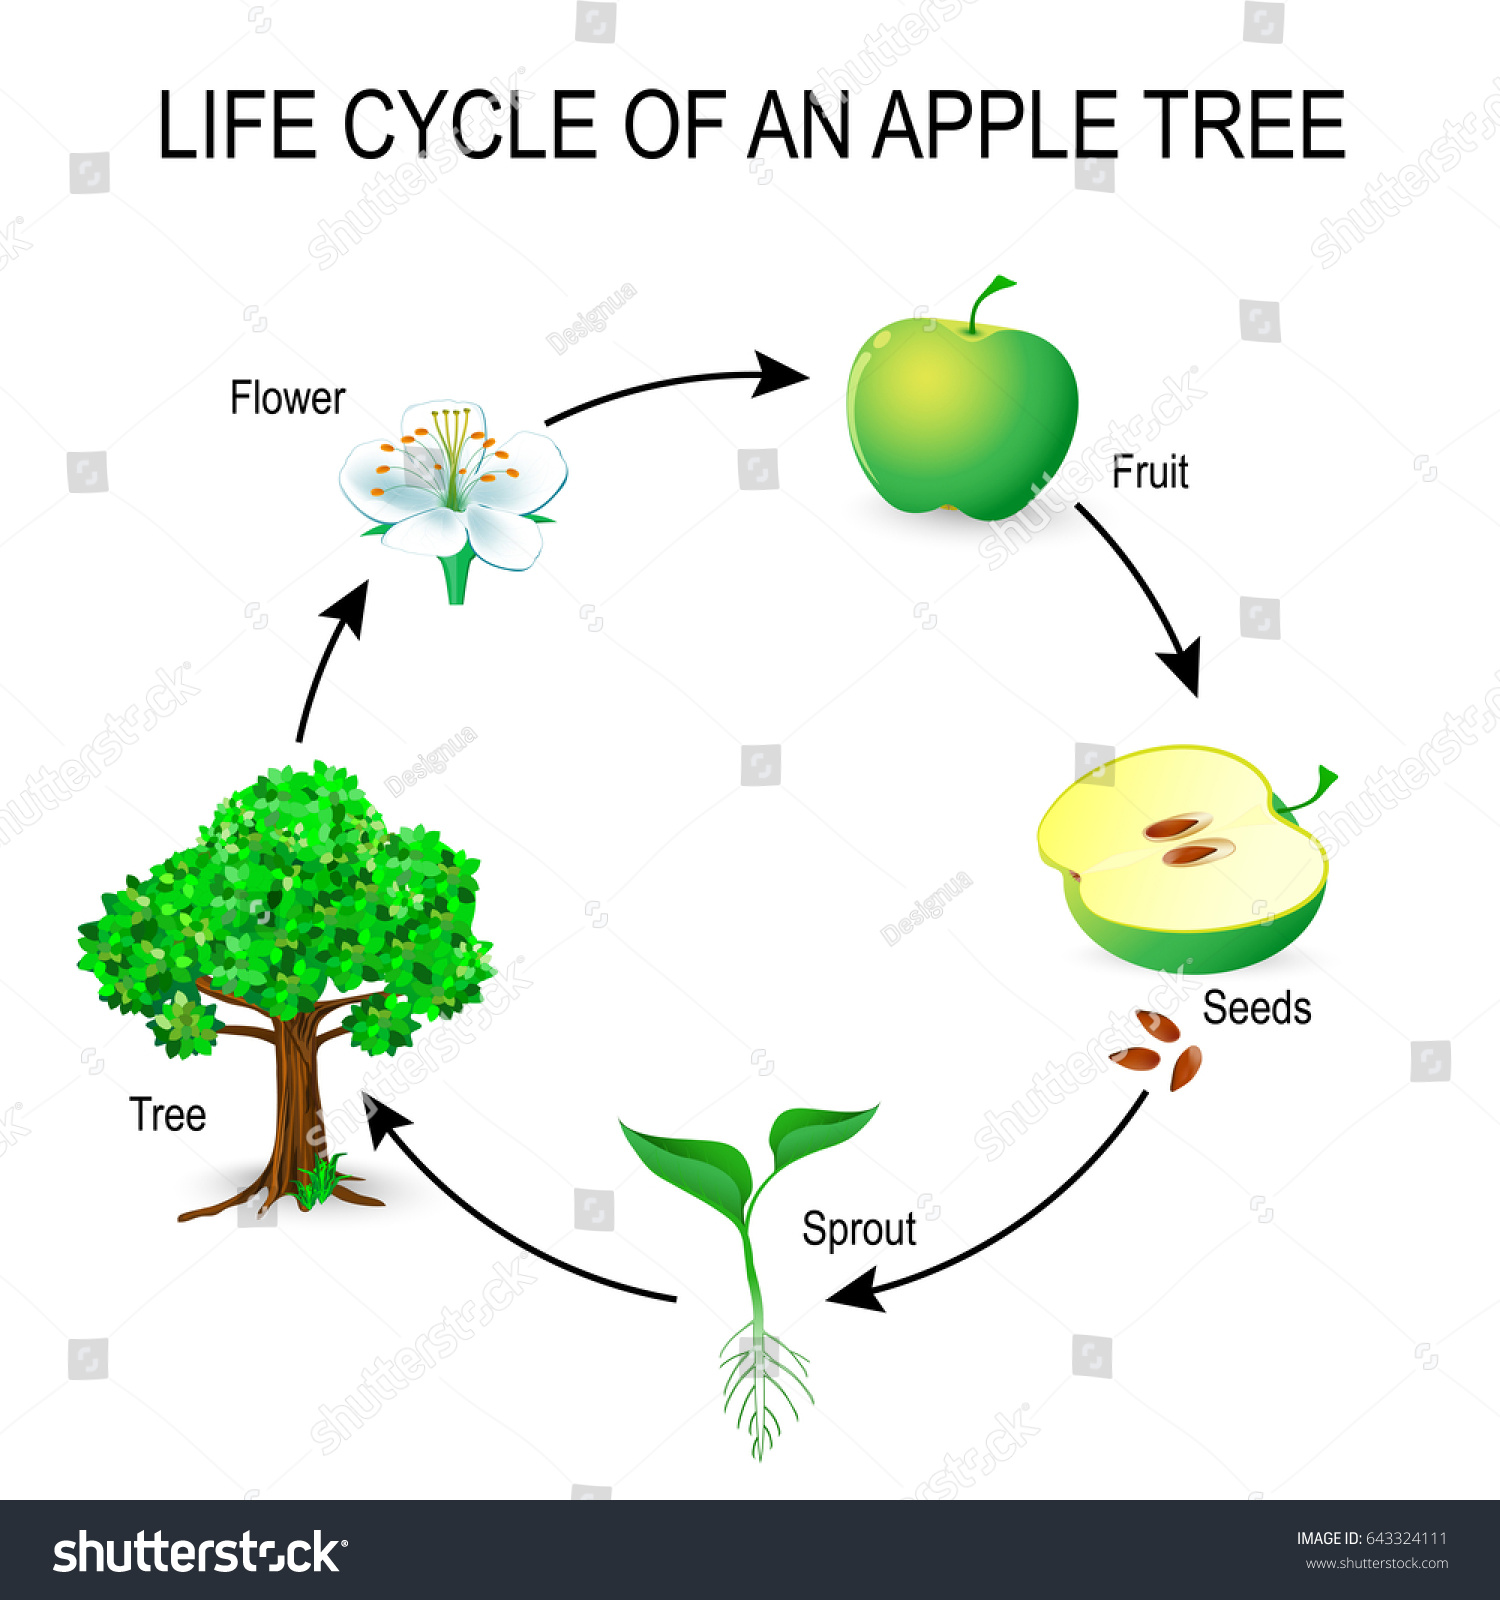 Life cycle apple tree flower seeds stock illustration 643324111 life cycle of an apple tree flower seeds fruit sprout seed pooptronica